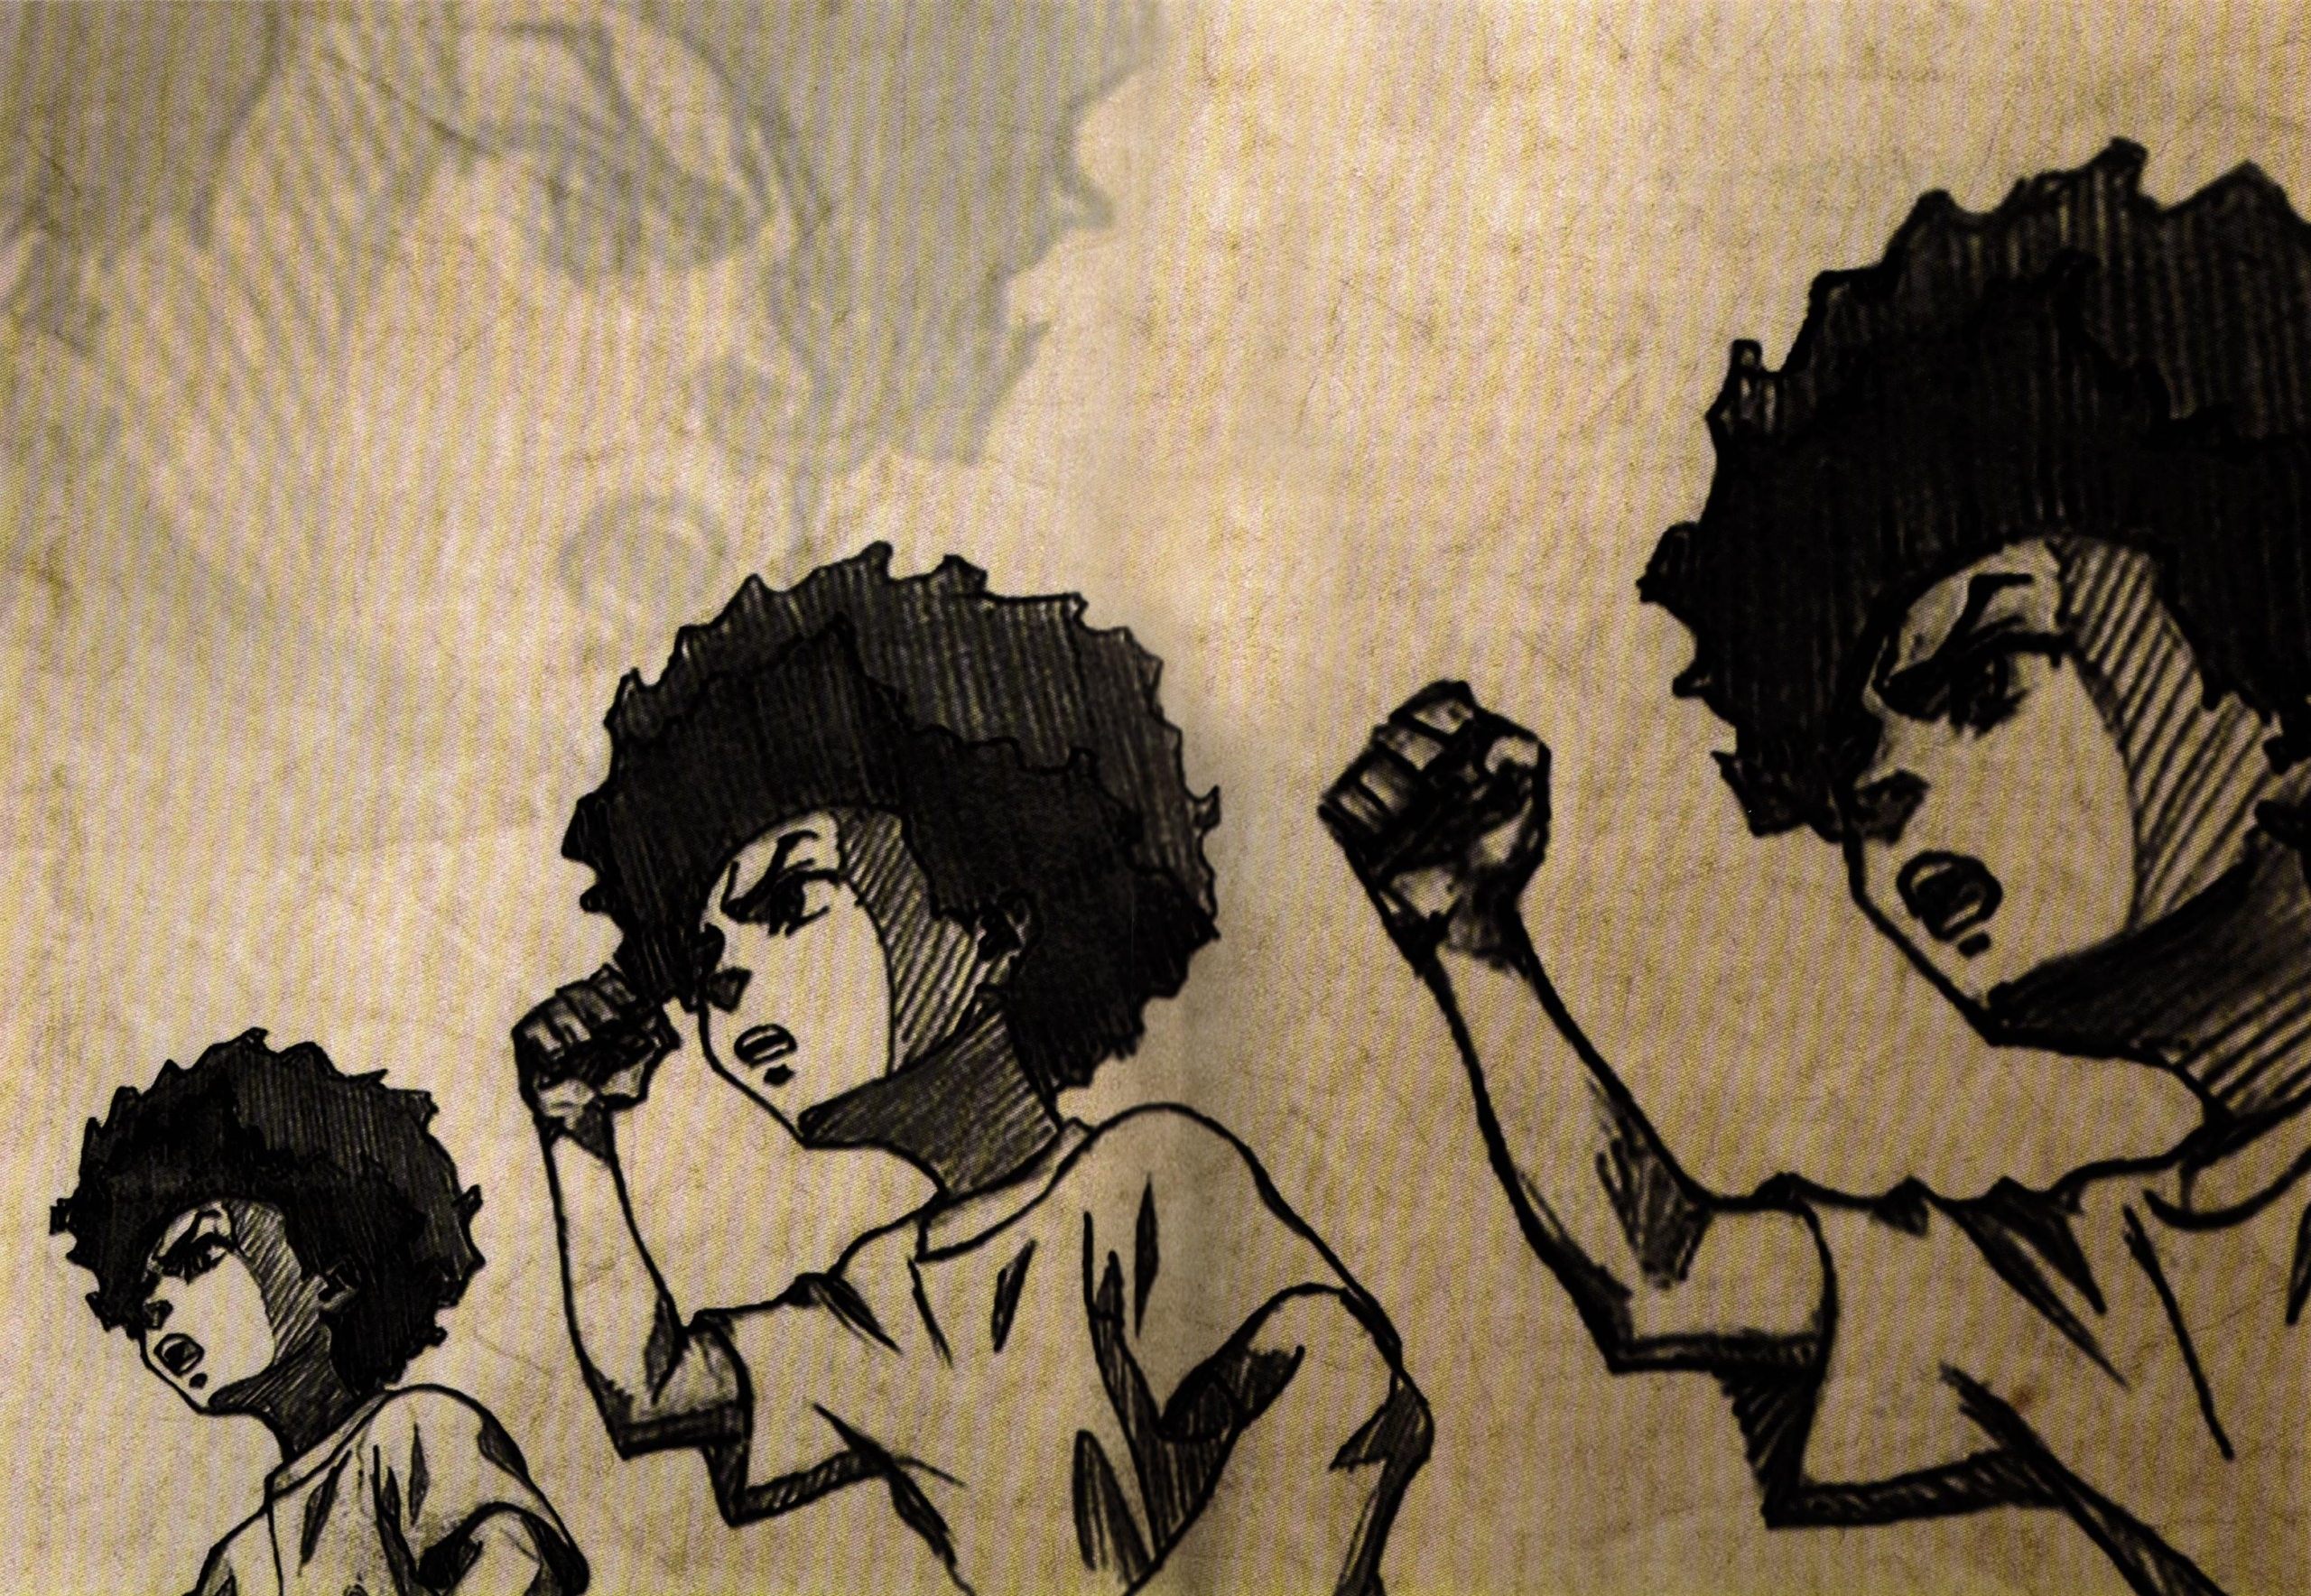 Boondocks Wallpaper – What Is It and Why Is It So Popular?